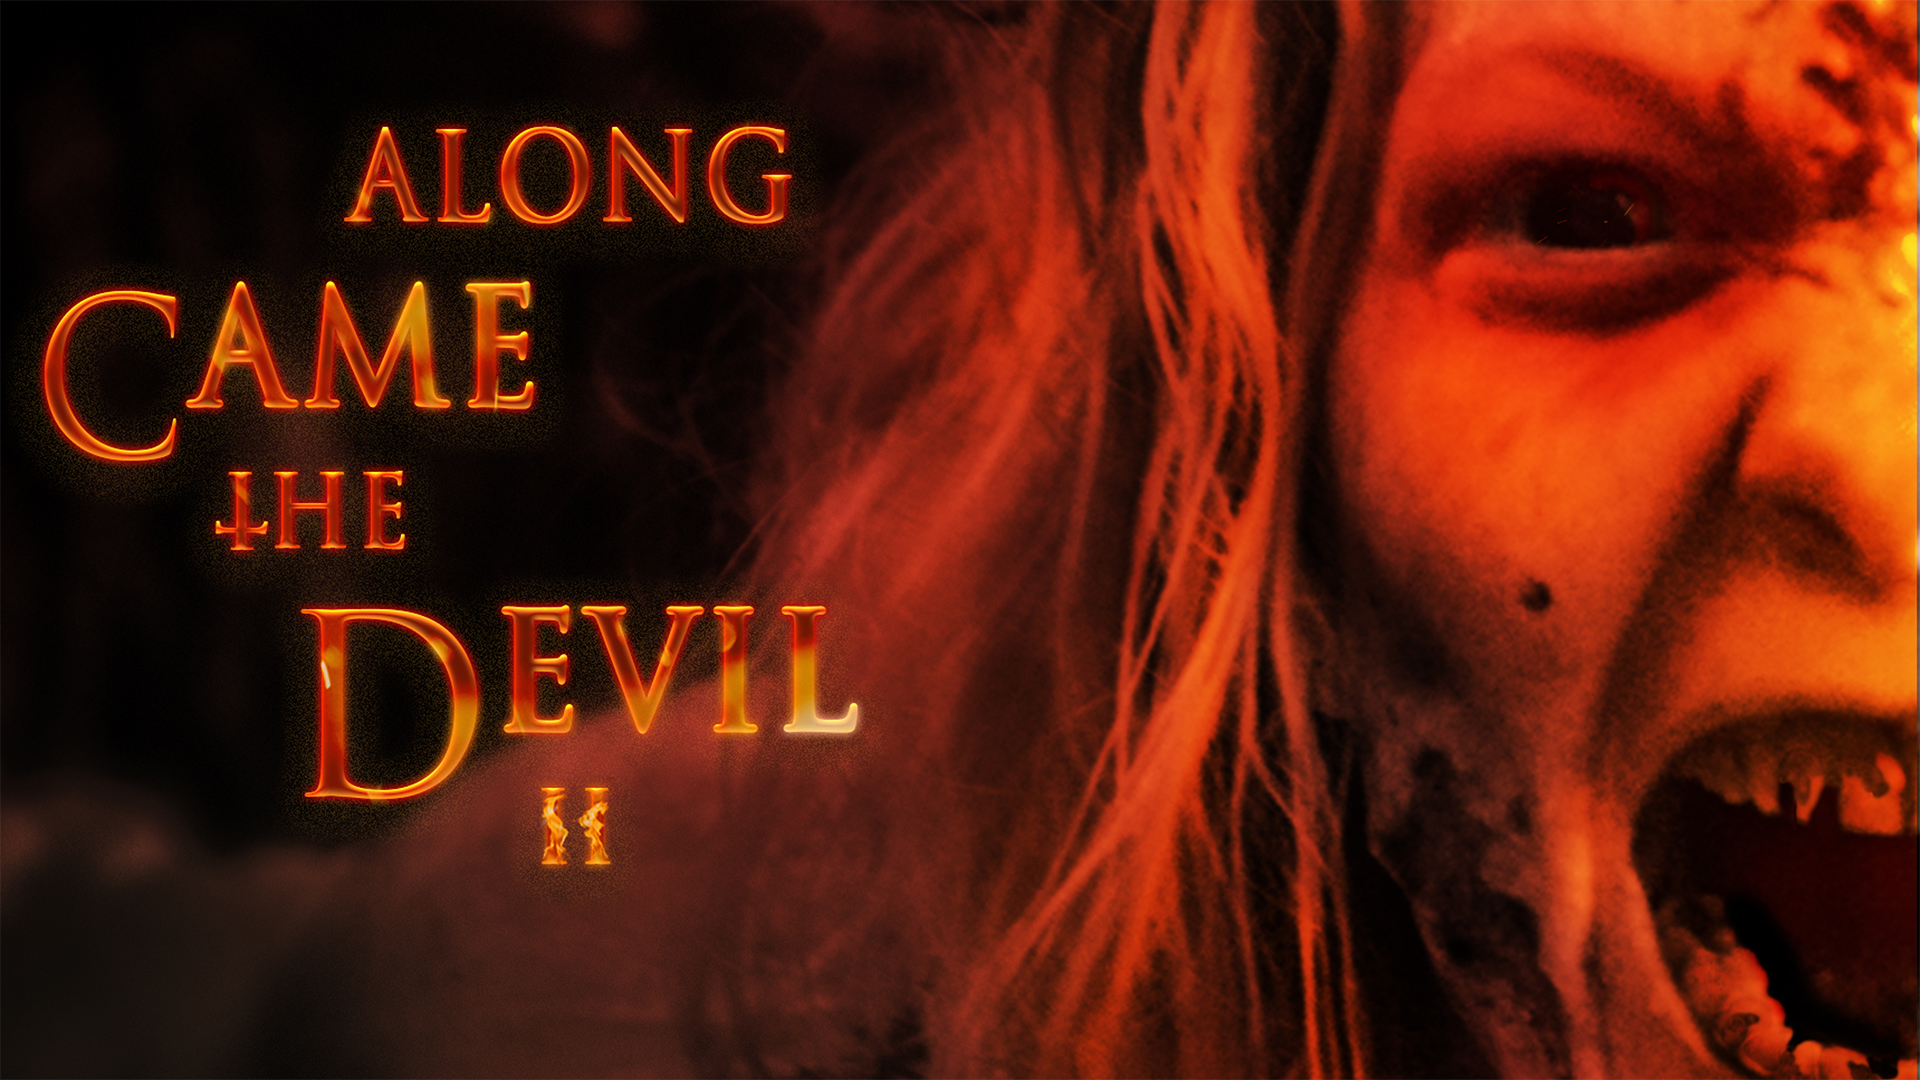 Along Came the Devil II